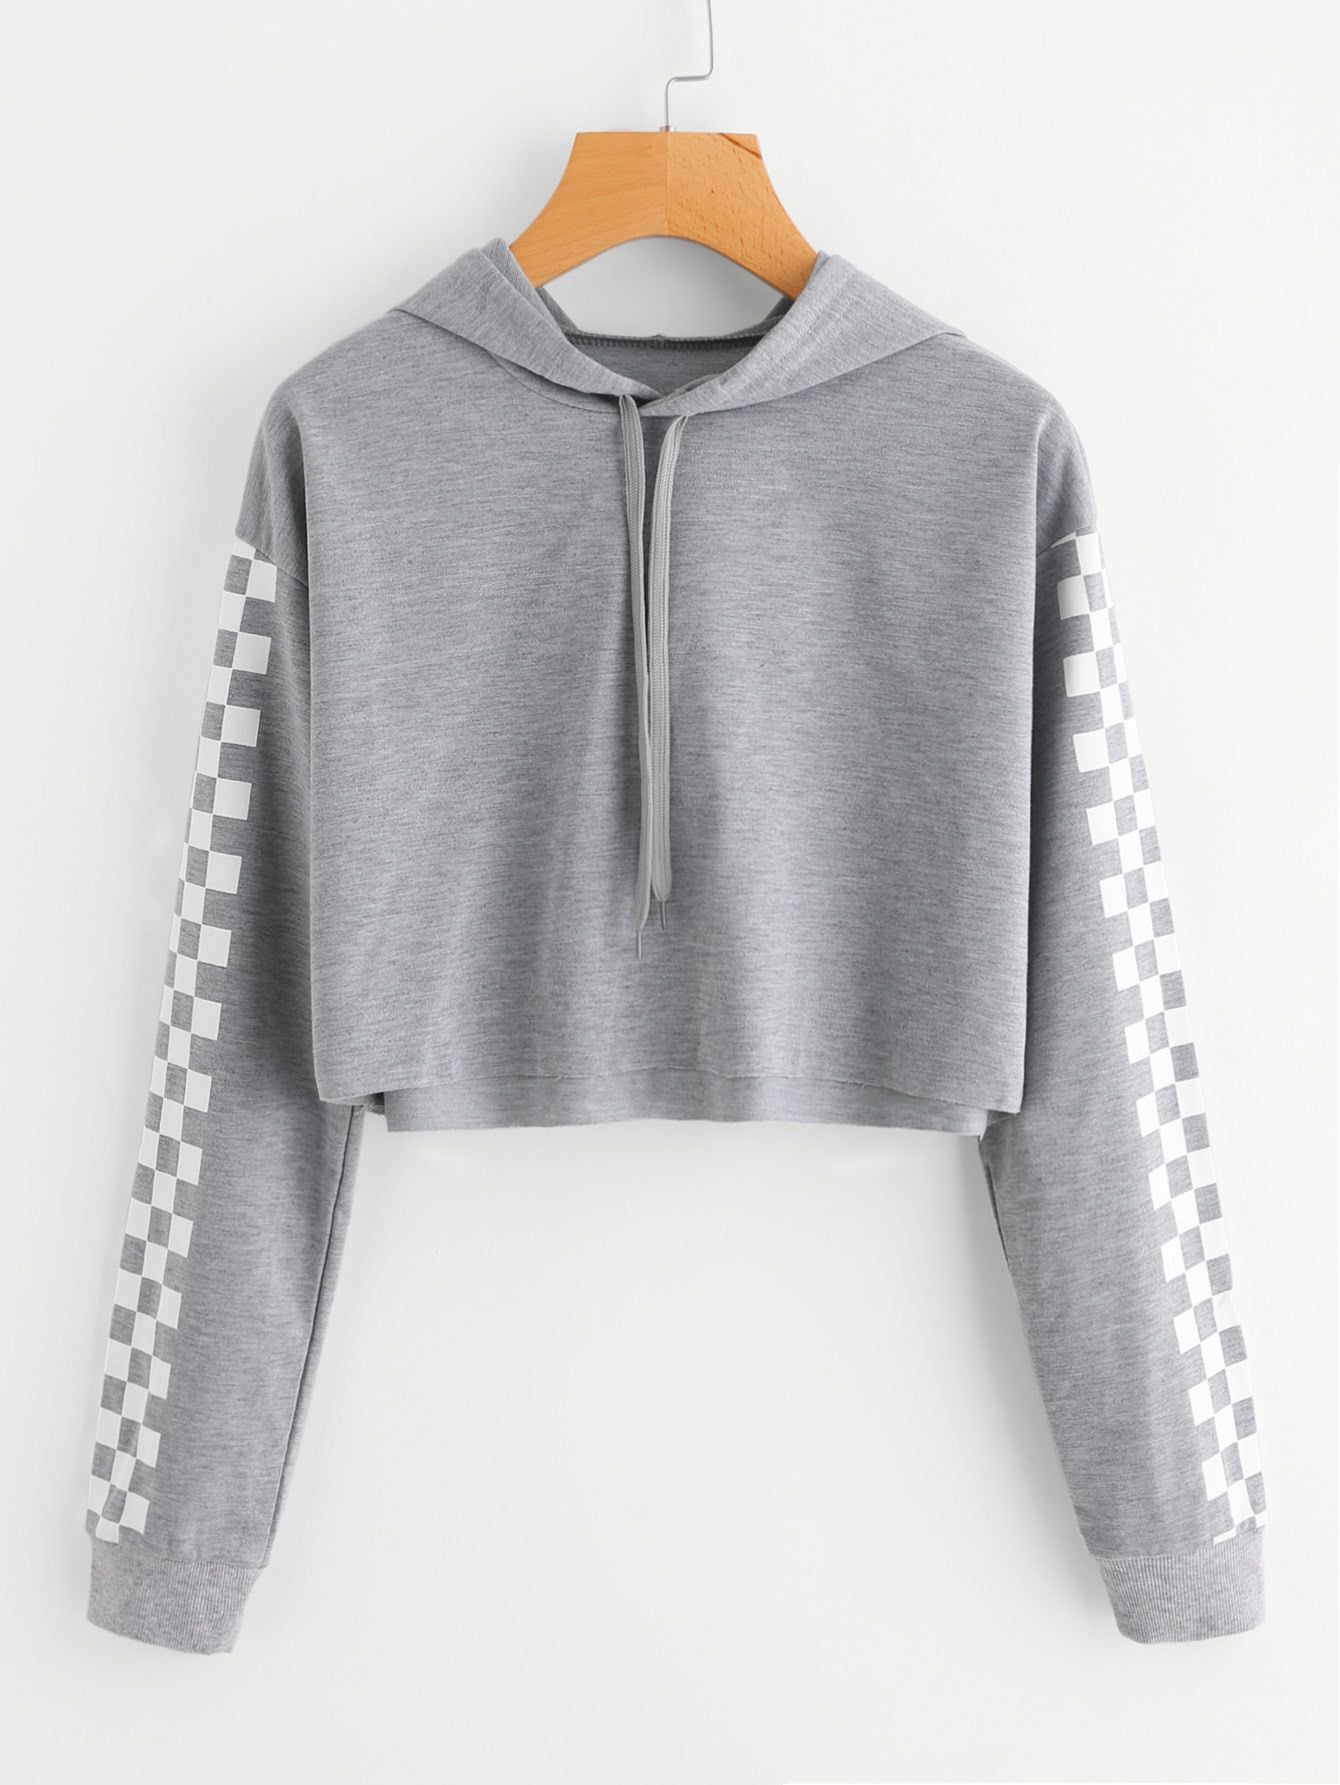 ed823fb901a3 Shop Contrast Checked Sleeve Crop Hoodie online. SheIn offers Contrast  Checked Sleeve Crop Hoodie   more to fit your fashionable needs.